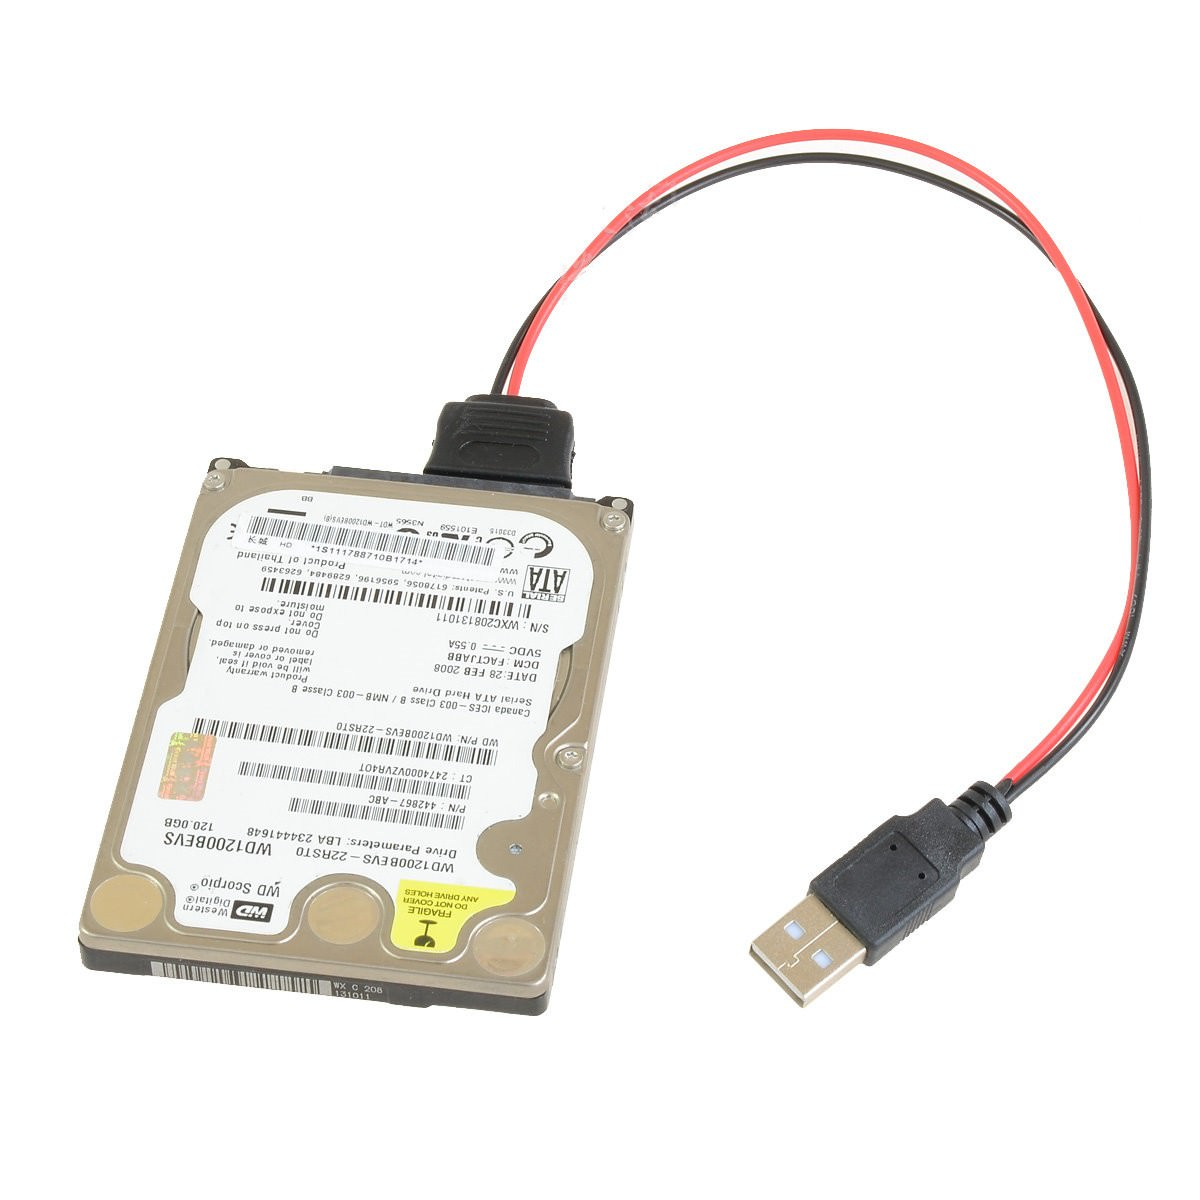 USB_to_2.5_SSD_5 Pin_SATA_Power_Adapter_Cable_%2820cm%29_%281%29__21928_zoom usb to 2 5 ssd 5 pin sata power adapter cable (20cm) moddiy com sata to usb cable wiring diagram at crackthecode.co